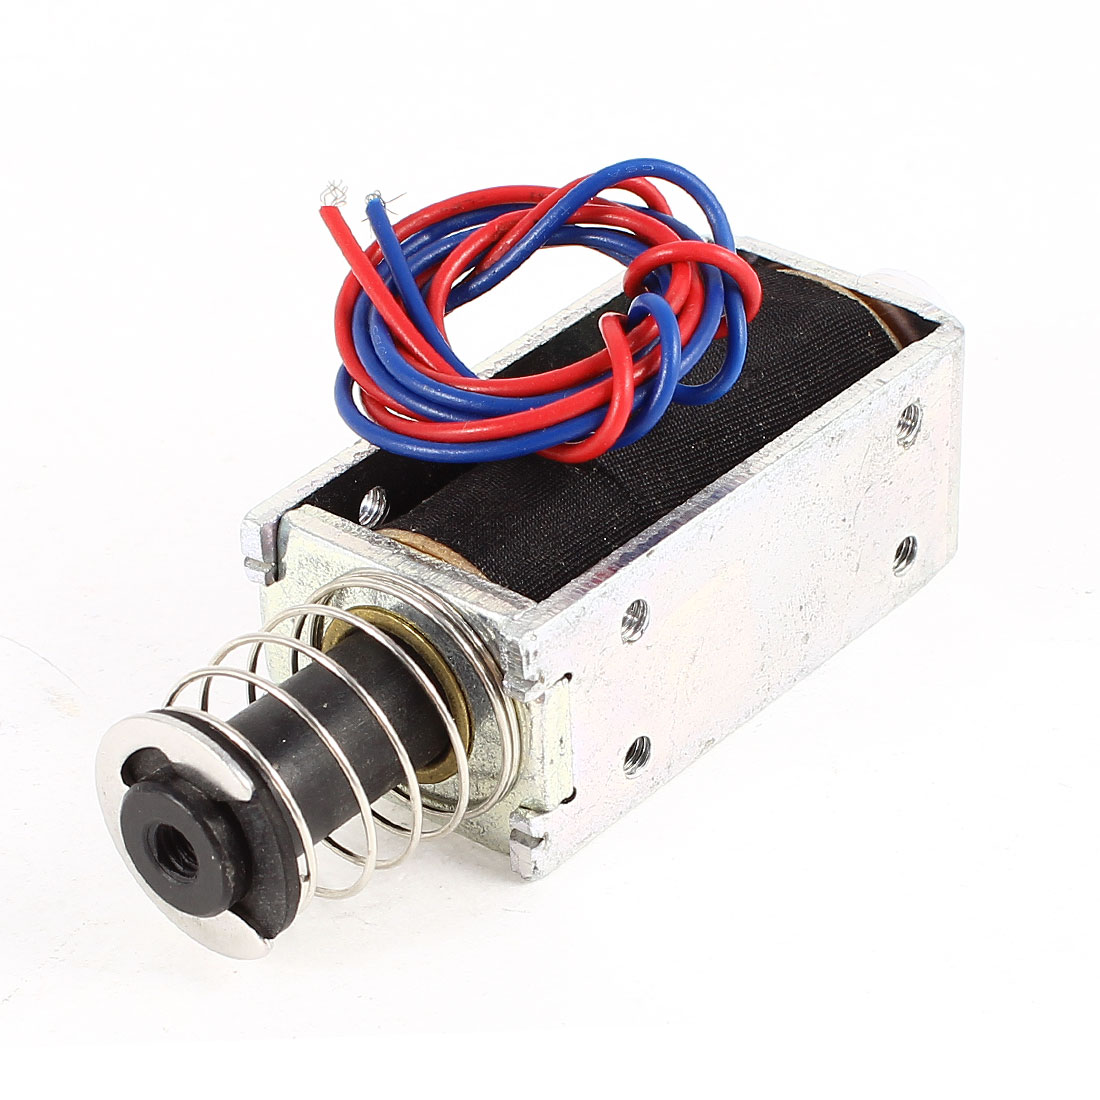 Uxcell DC 24V 0.3A 10mm Stroke 100g Force Push Pull Type Tubular Solenoid Electromagnet